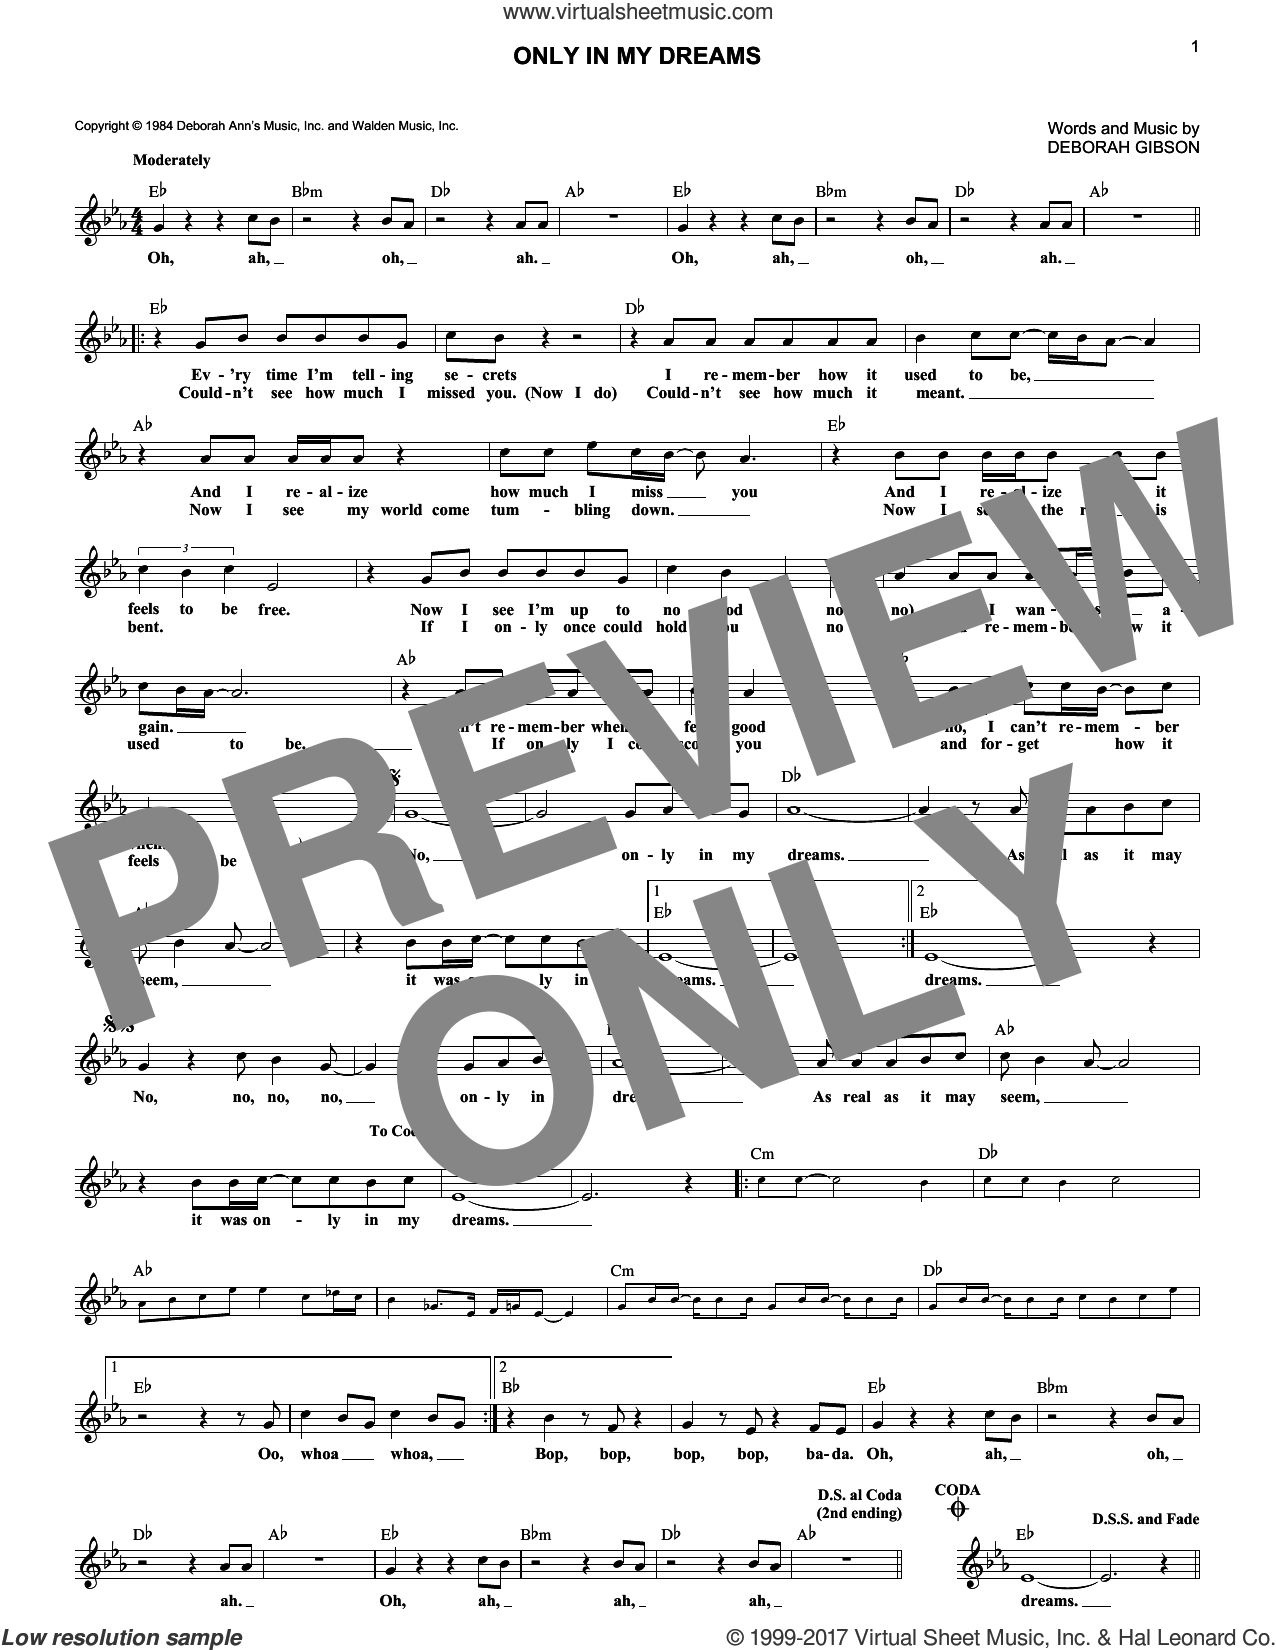 Only In My Dreams sheet music for voice and other instruments (fake book) by Debbie Gibson and Deborah Gibson, intermediate skill level